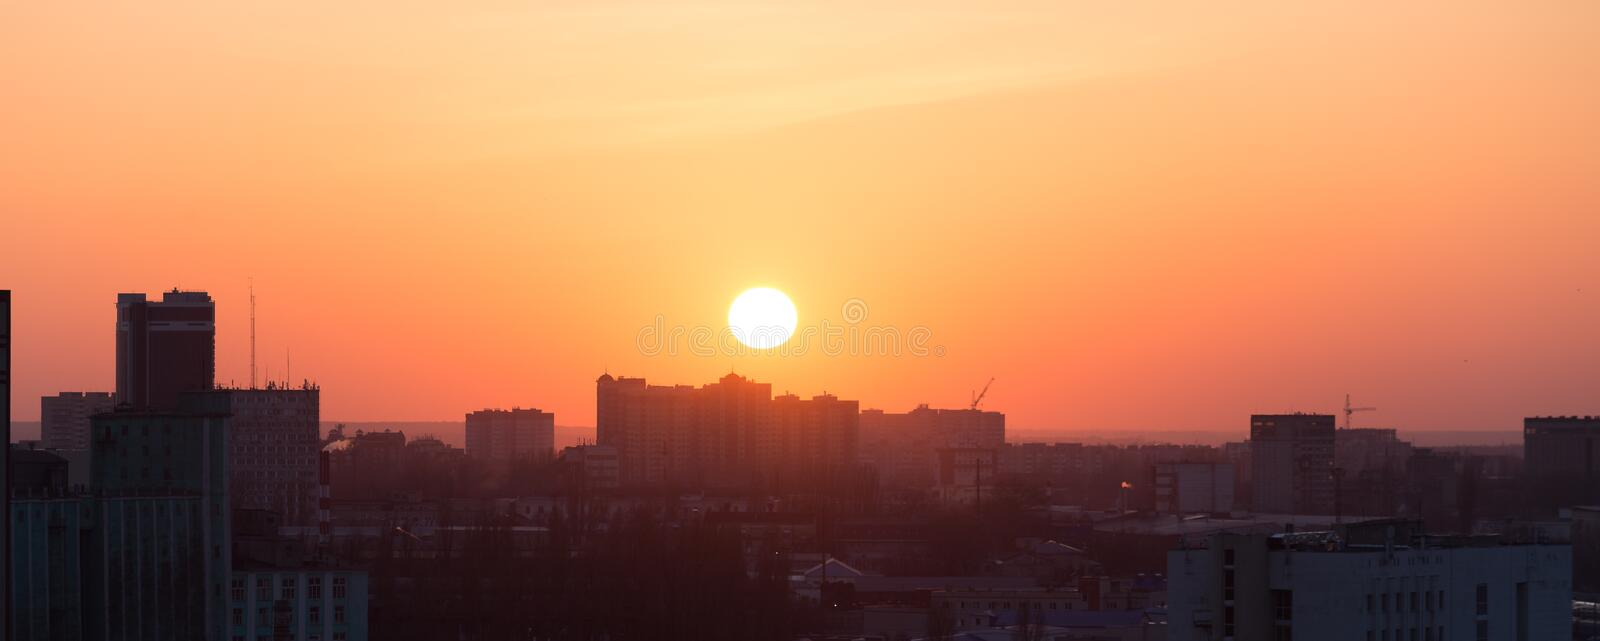 Voronezh city at sunset, against a colorful sky, panoramic aerial view from roof stock image